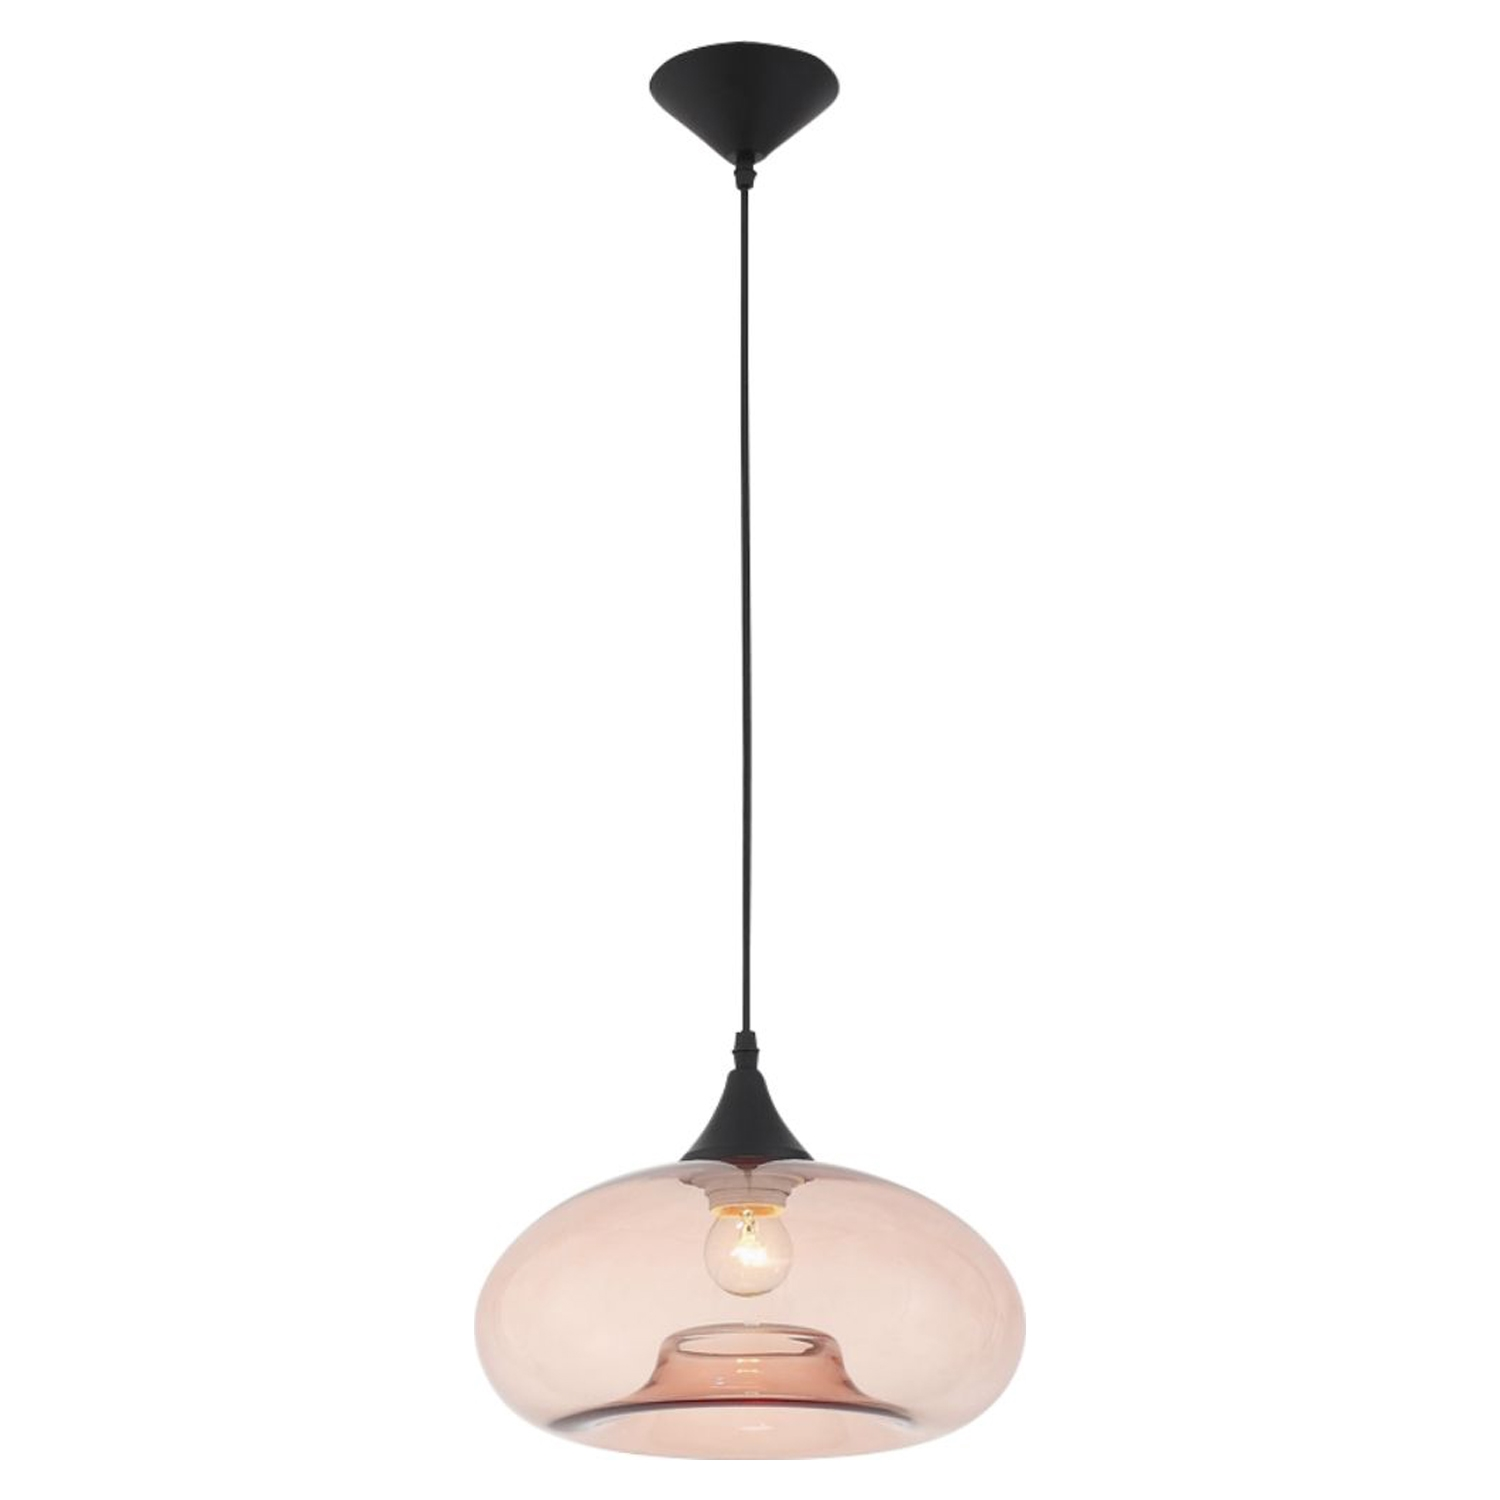 Janna Pendant Light - Brown